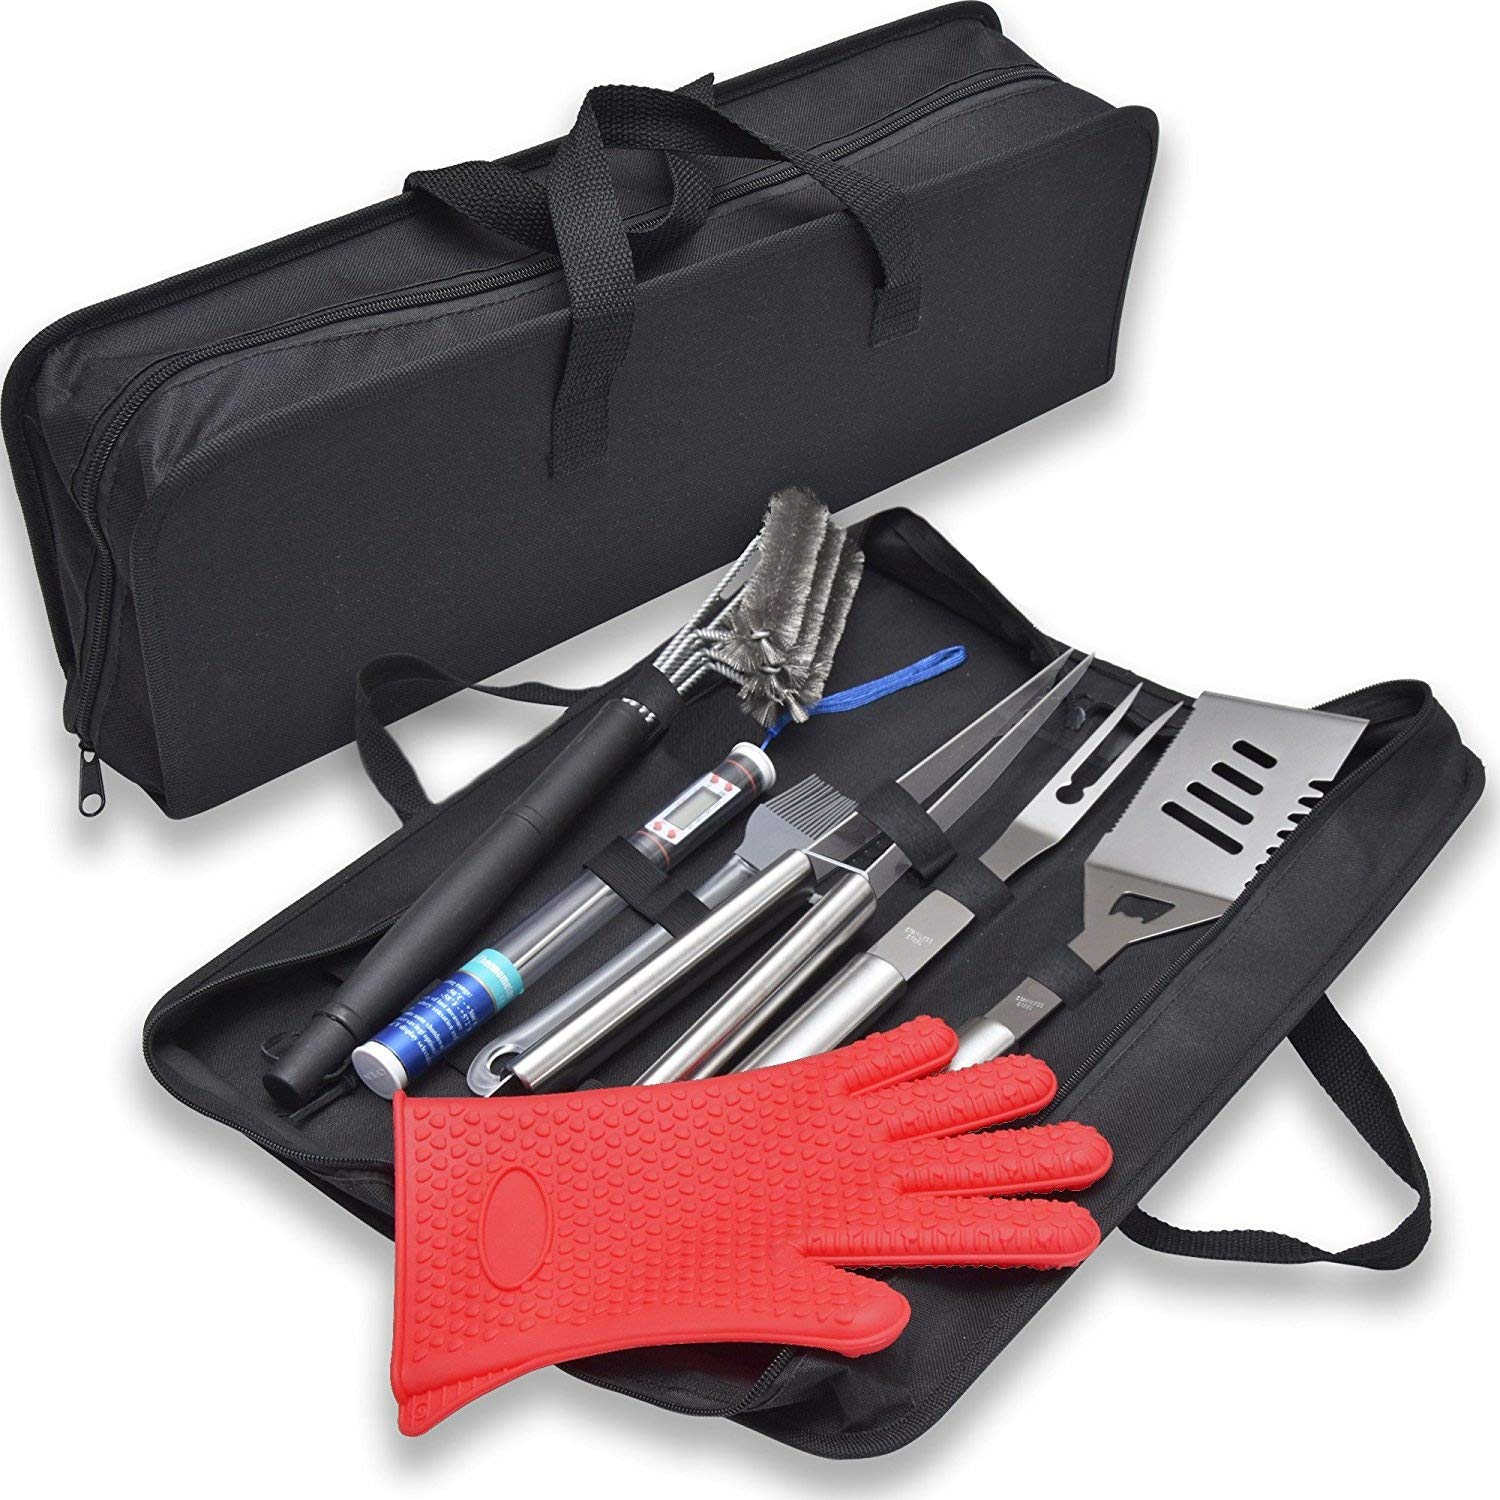 SALE! ALL-IN-ONE PROFESSIONAL PREMIUM BBQ GRILL SET. Complete BBQ grill set with Stainless Steel Spatula, Tongs, Fork, BBQ Meat Thermometer, Grill Cleaning Brush, Glove, Basting Brush,Case.